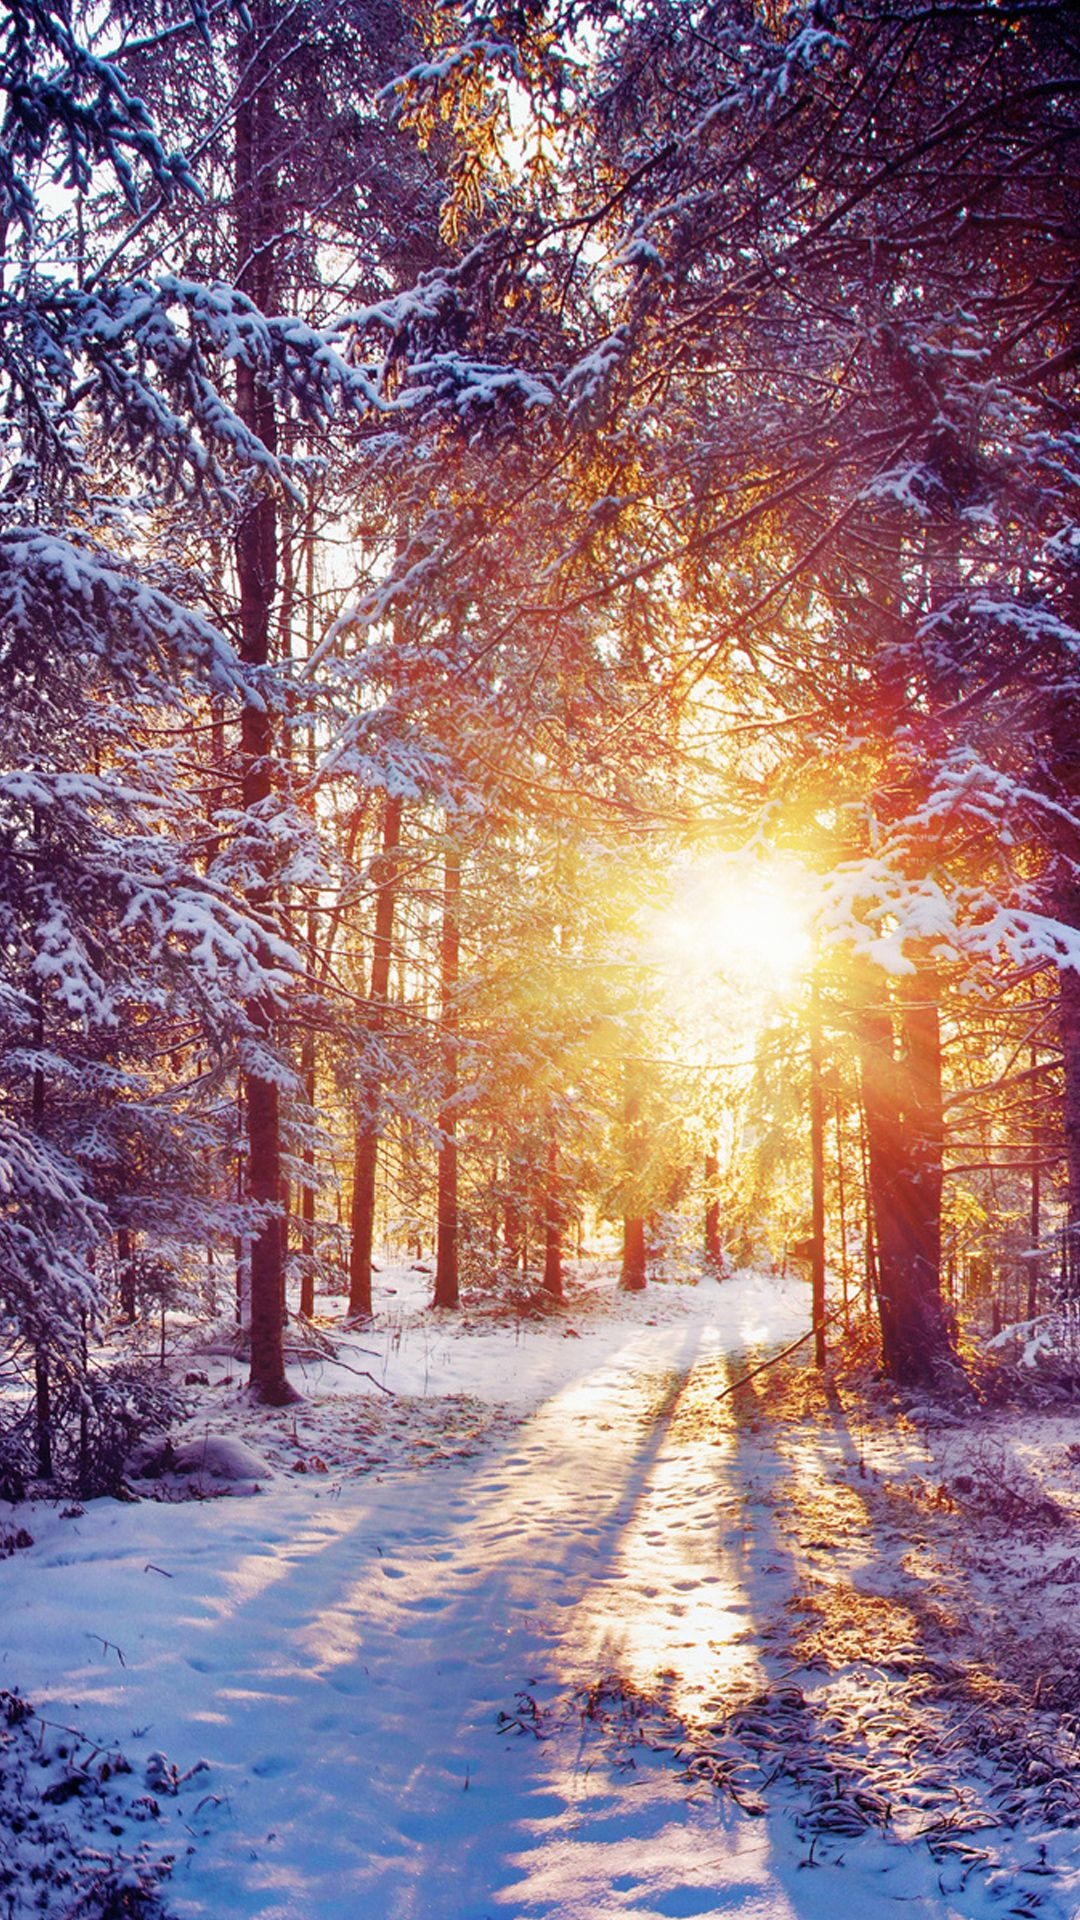 60 BEAUTIFUL NATURE WALLPAPER FREE TO DOWNLOAD. Winter